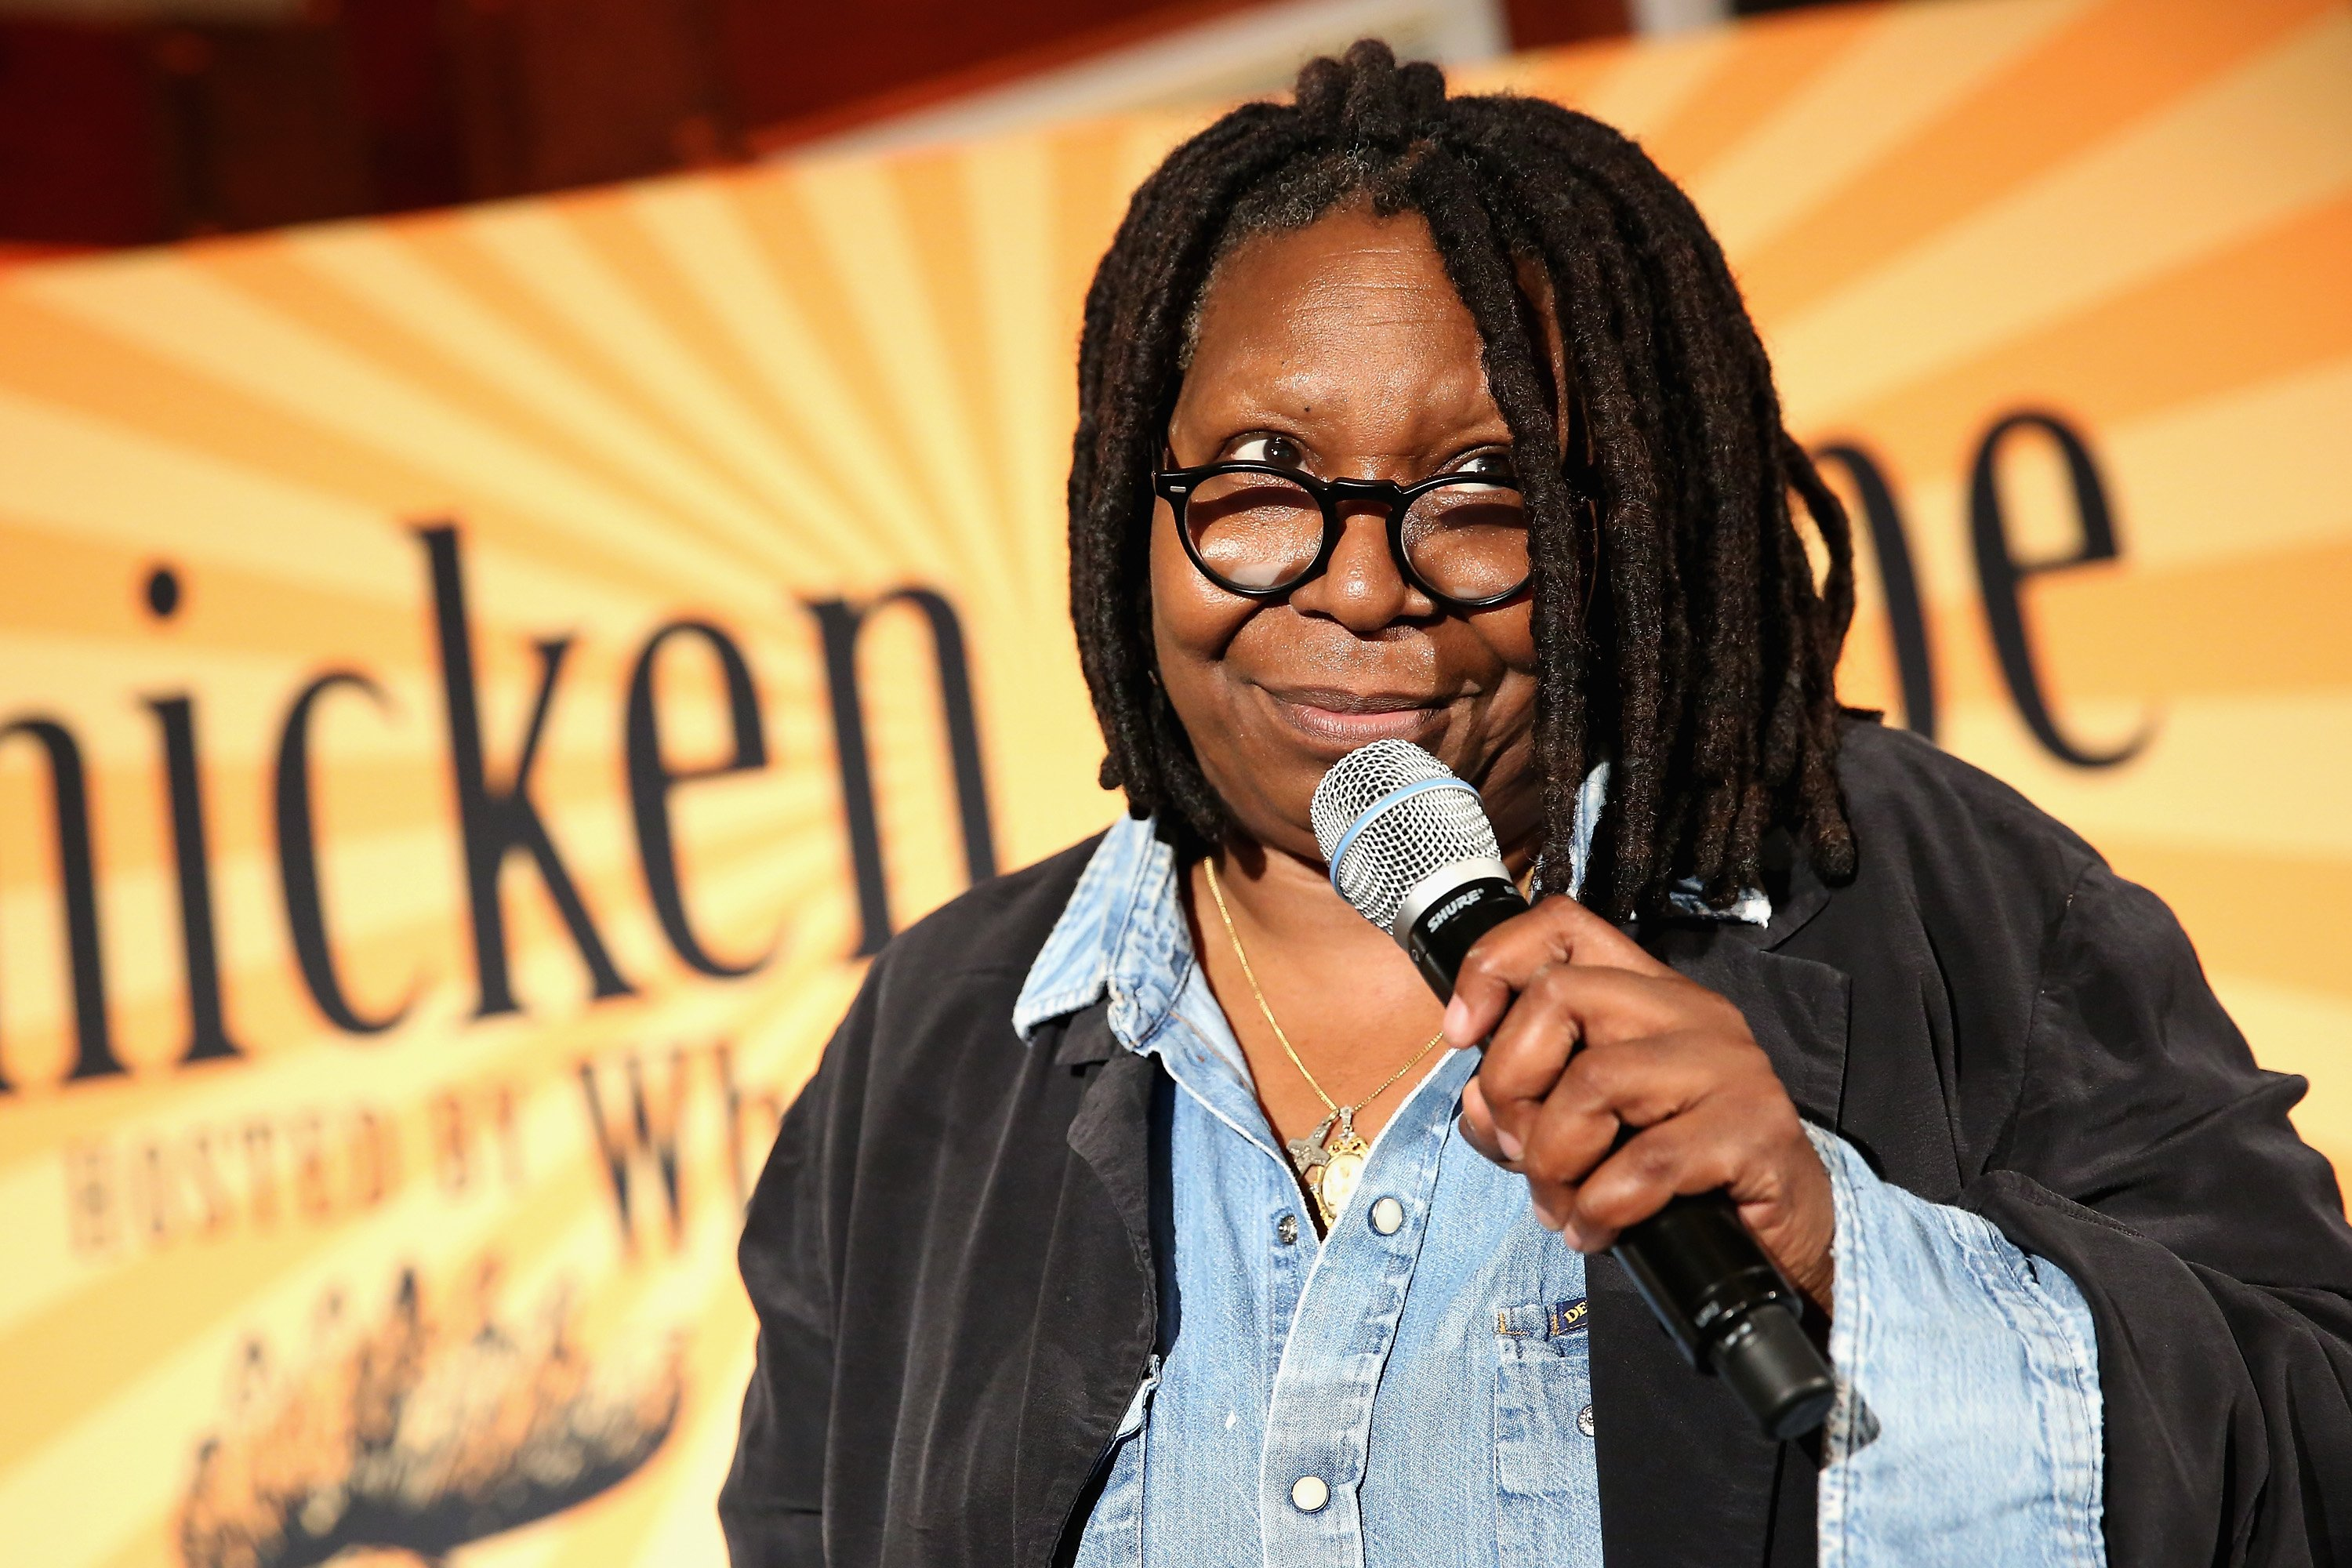 Whoopi Goldberg during Food Network & Cooking Channel New York City Wine & Food Festival presented by FOOD & WINE at The Loeb Boathouse on October 15, 2015 | Photo: GettyImages